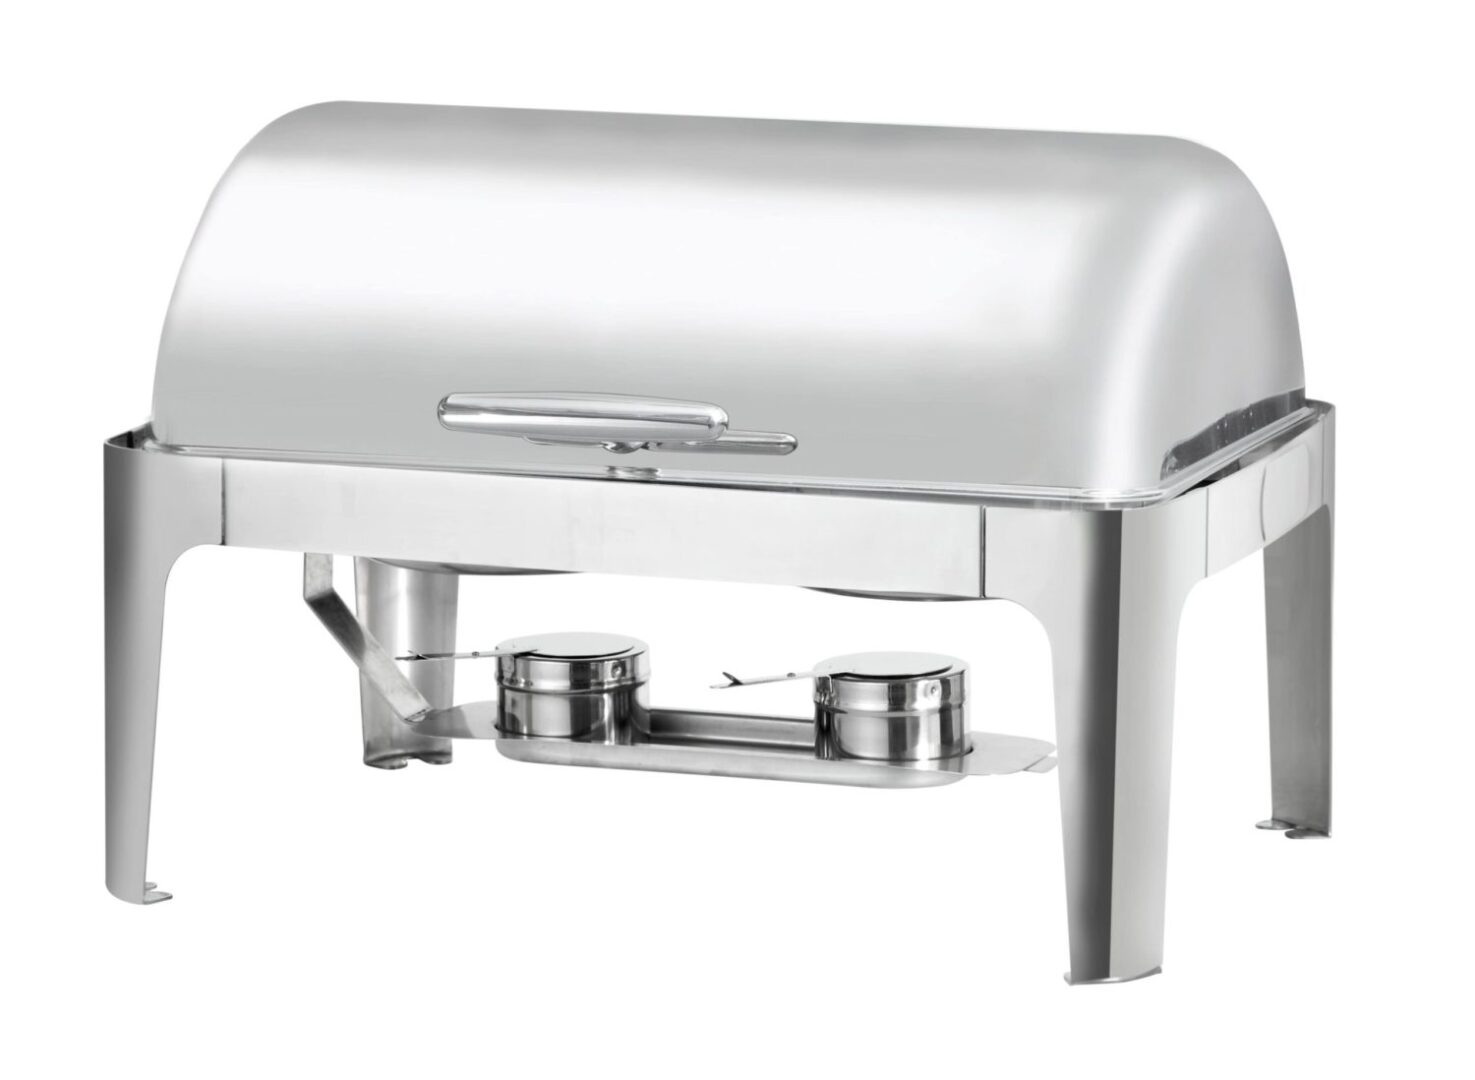 Mixrite AT61363 Economic Oblong Chafing Dish 645x475x435